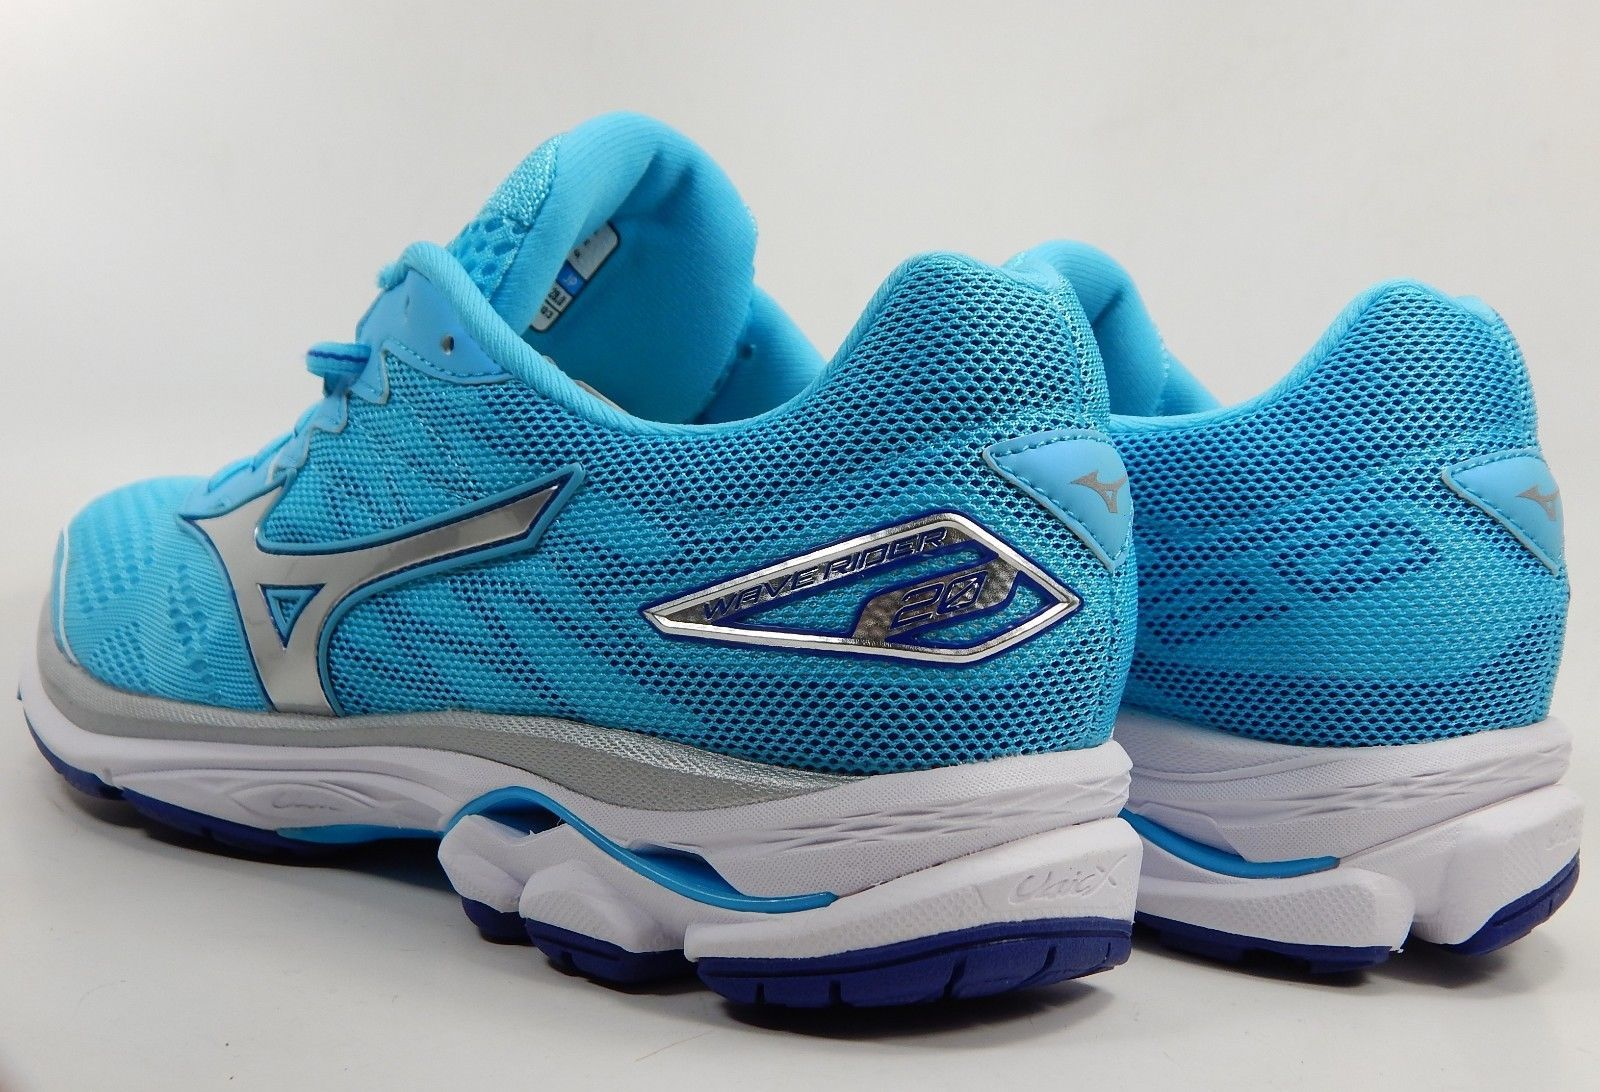 Mizuno Wave Rider 20 Size 11.5 M (B) EU 43 Women's Running Shoes Blue Silver